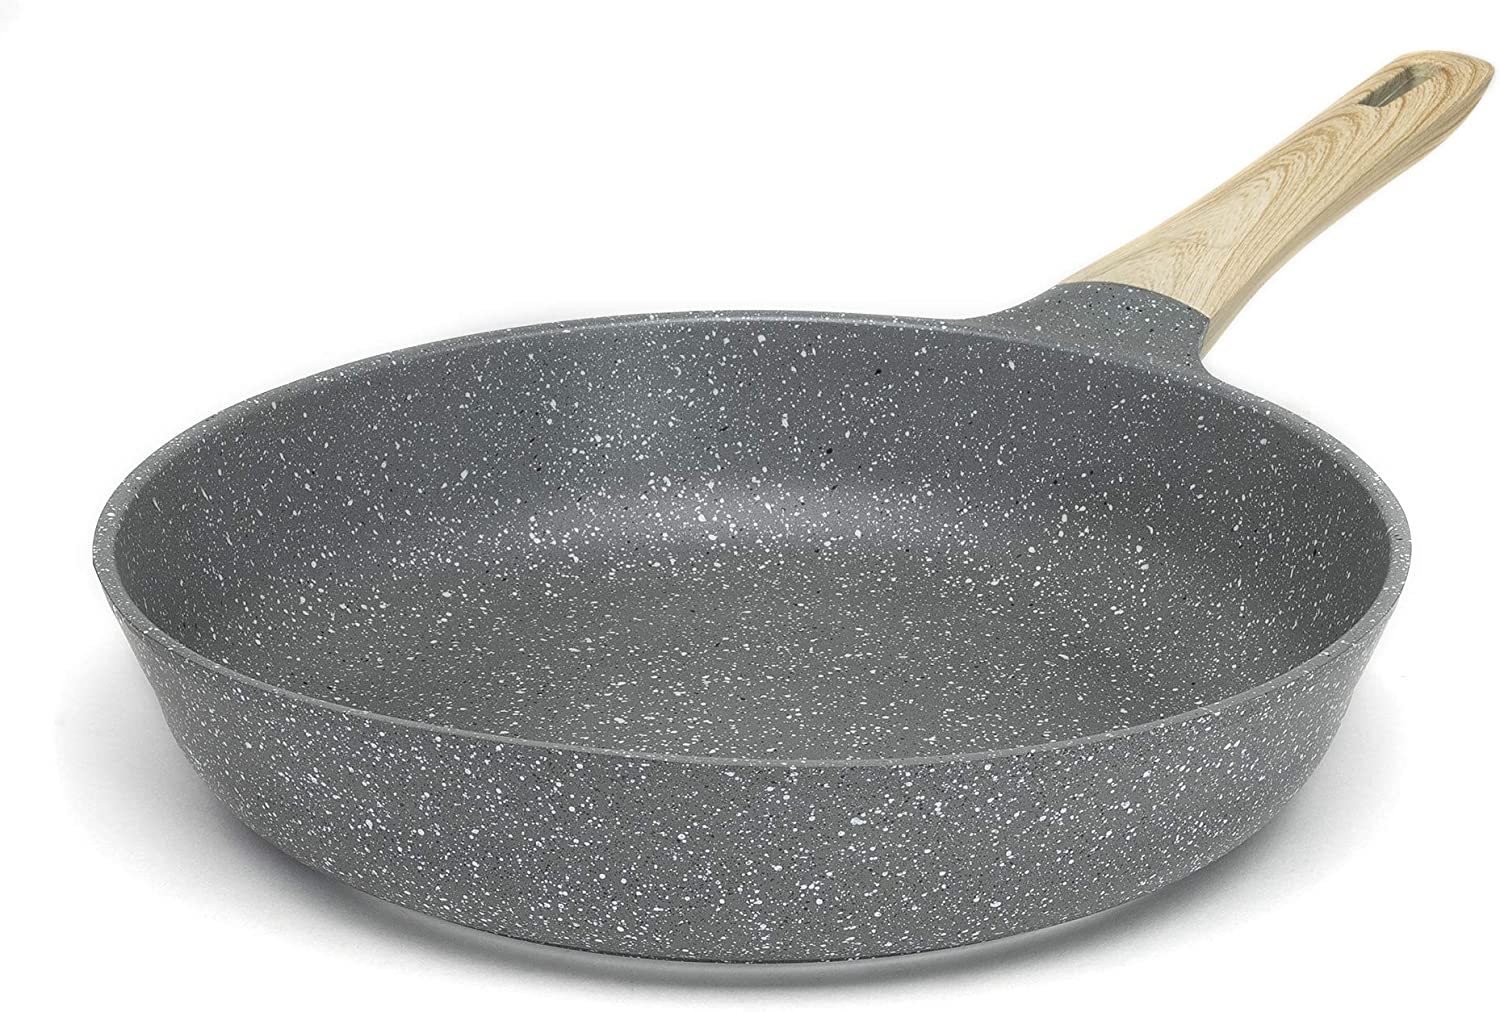 Ecolution Farmhouse Cast Aluminum Durable Nonstick Coating Stainless Steel Base Even Heating Dishwasher Safe Wood Look Handle 11 Inch Fry Pan Grey Speckle Kitchen Dining Amazon Com